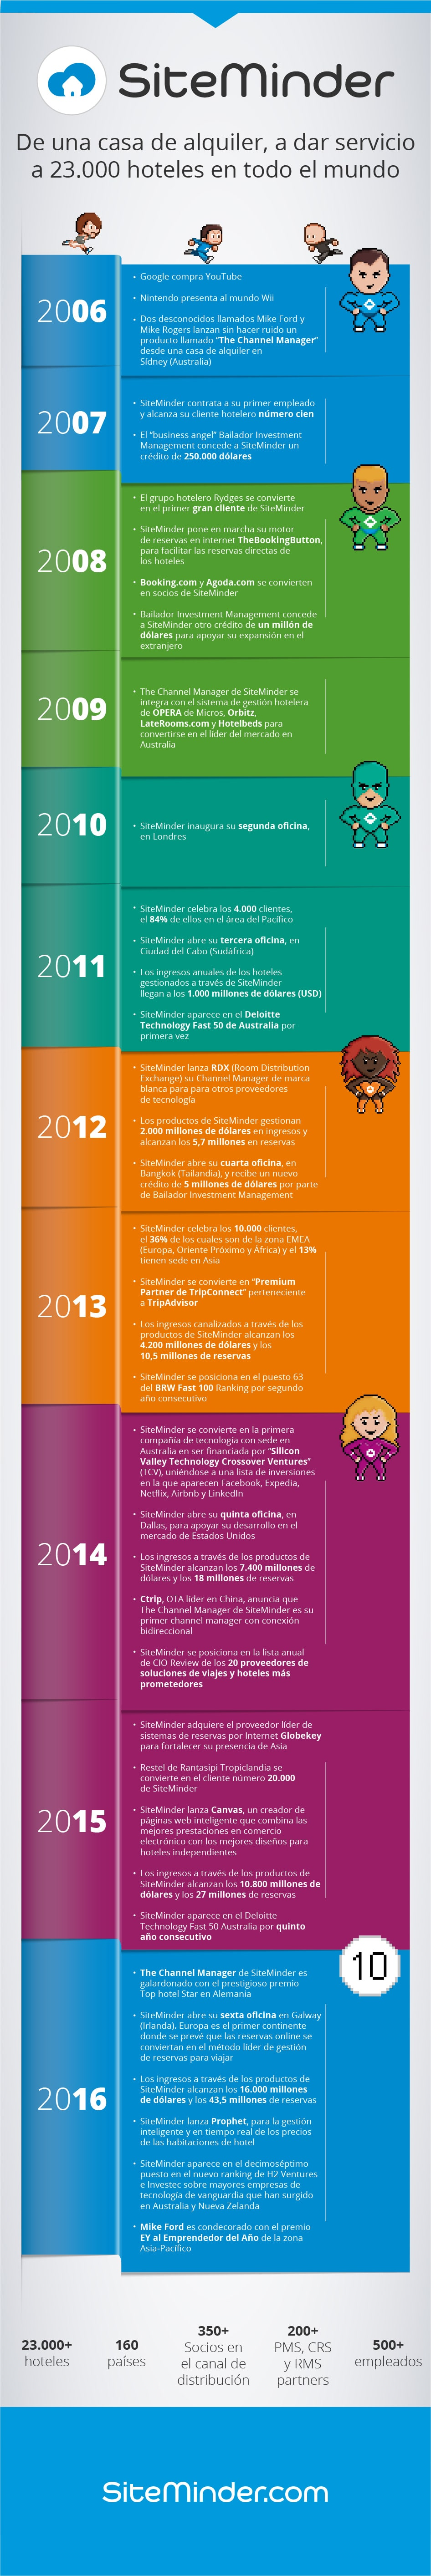 INFOGRAPHIC: 10 years of SiteMinder